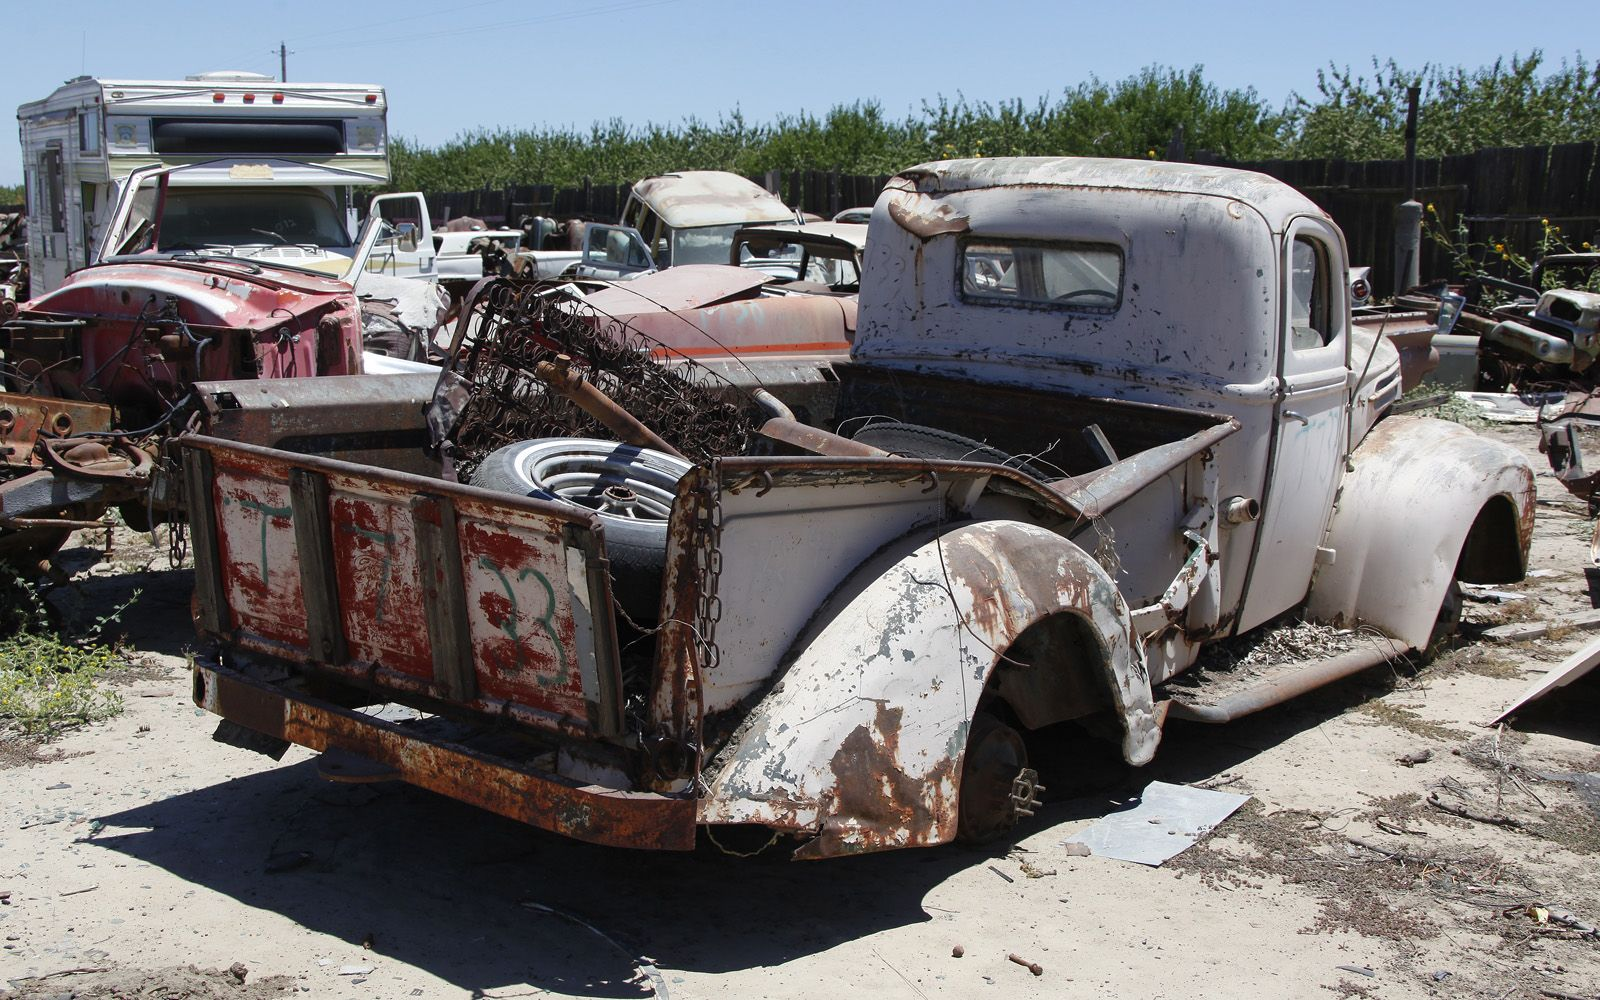 Pin by Dave Roehrle on Junk Yards and Rusty Stuff | Pinterest | Ford ...